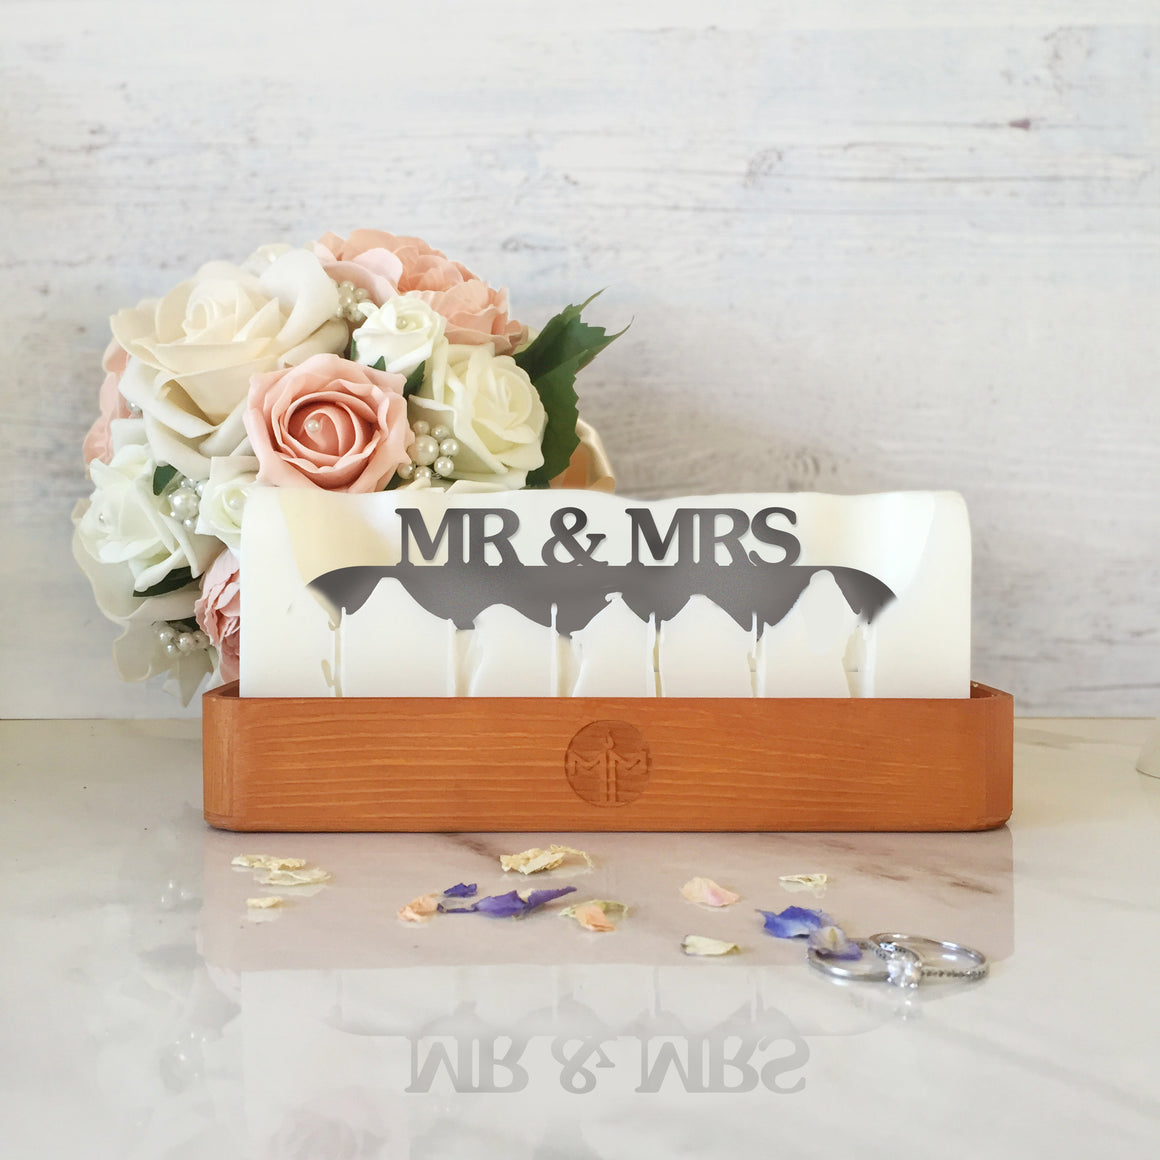 Hidden message candle 'Mr & Mrs' wooden tray